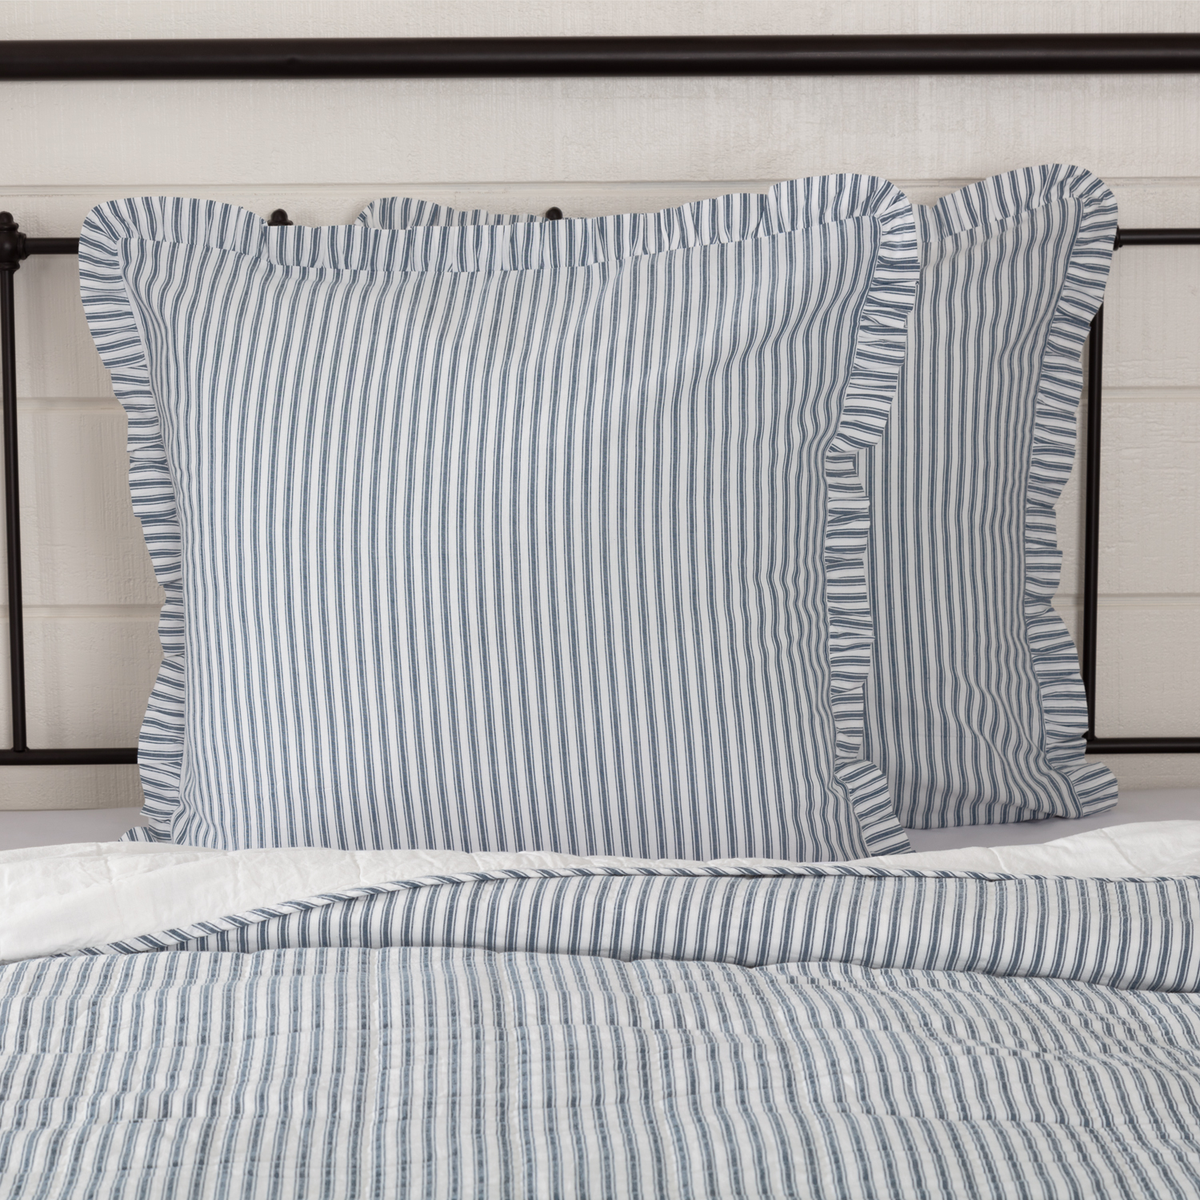 Sawyer Mill Charcoal Ticking Country Bedding Cotton Fabric Pillow Sham